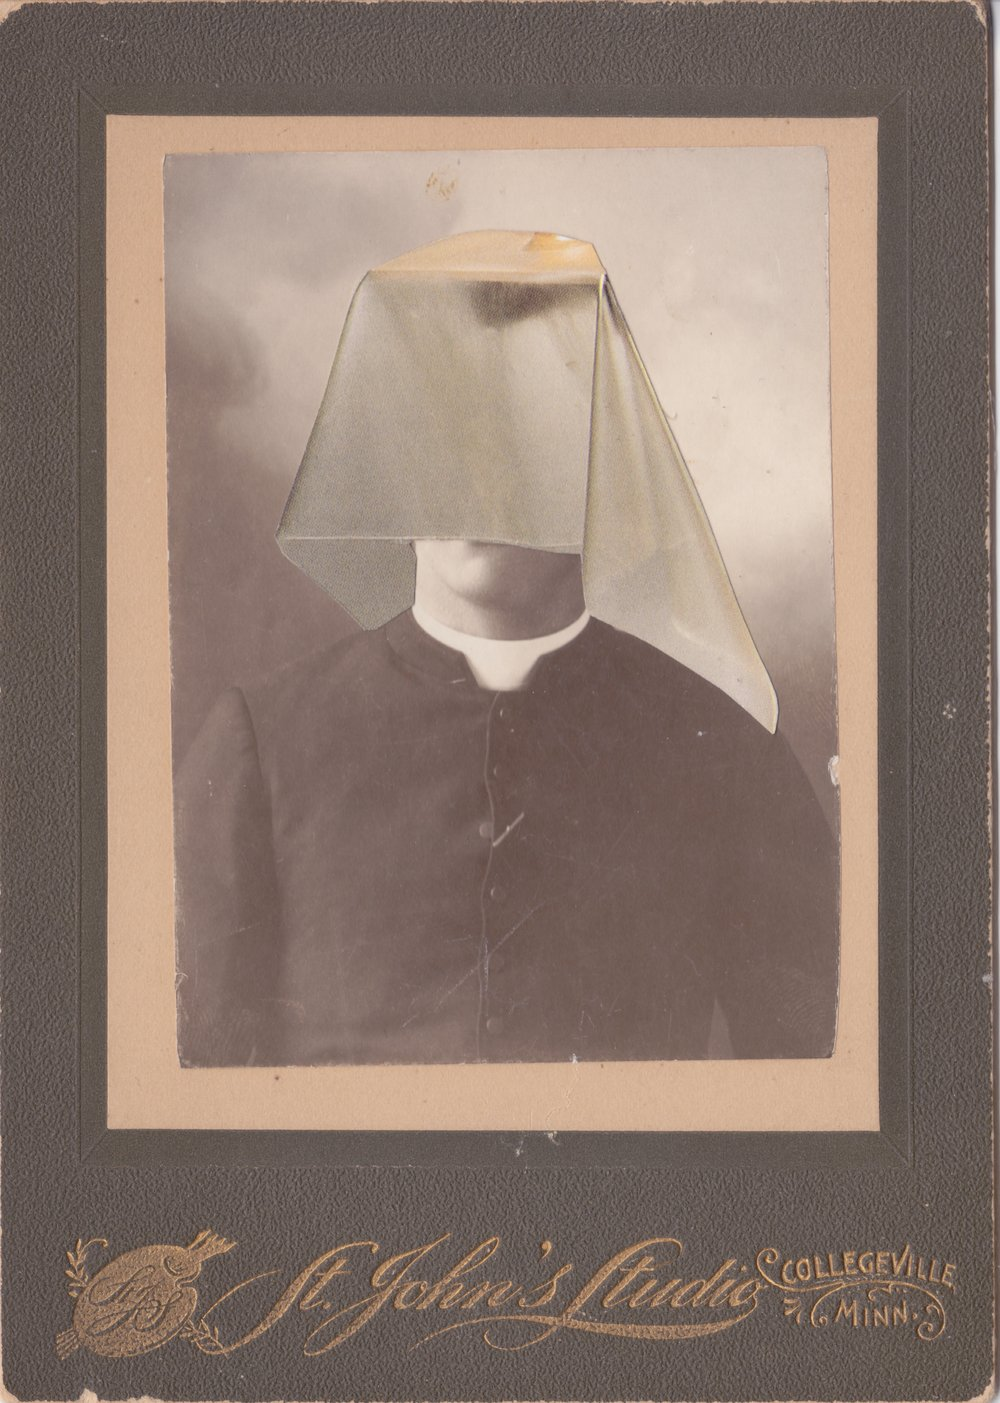 Studies in Early Photographic Absurdist Portraiture - fig. 1